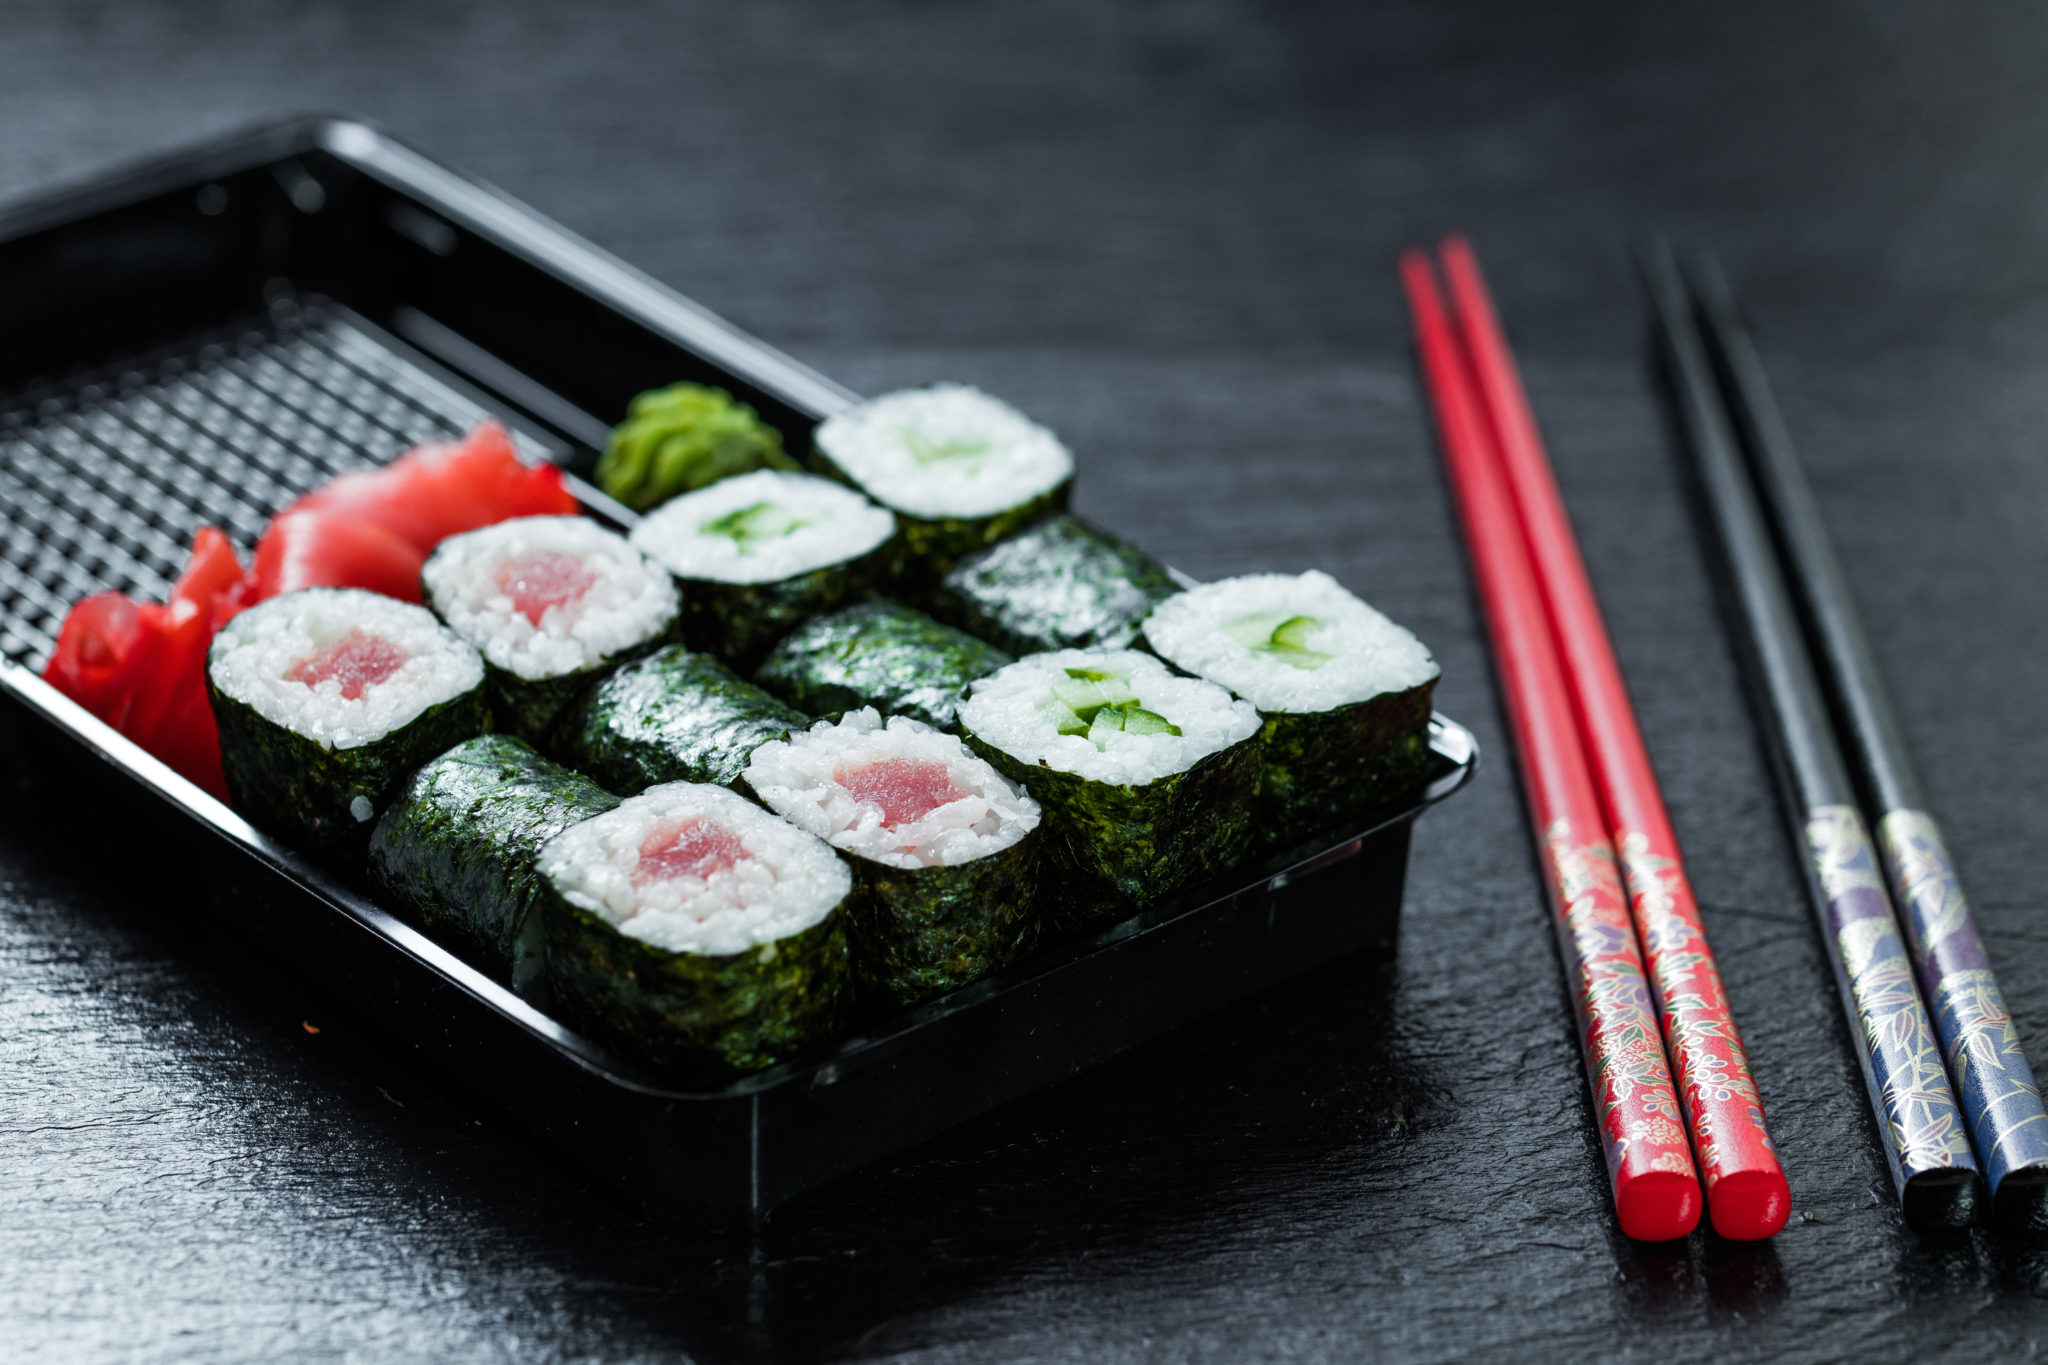 Maki placed in a delivery container next to two pair of chopsticks